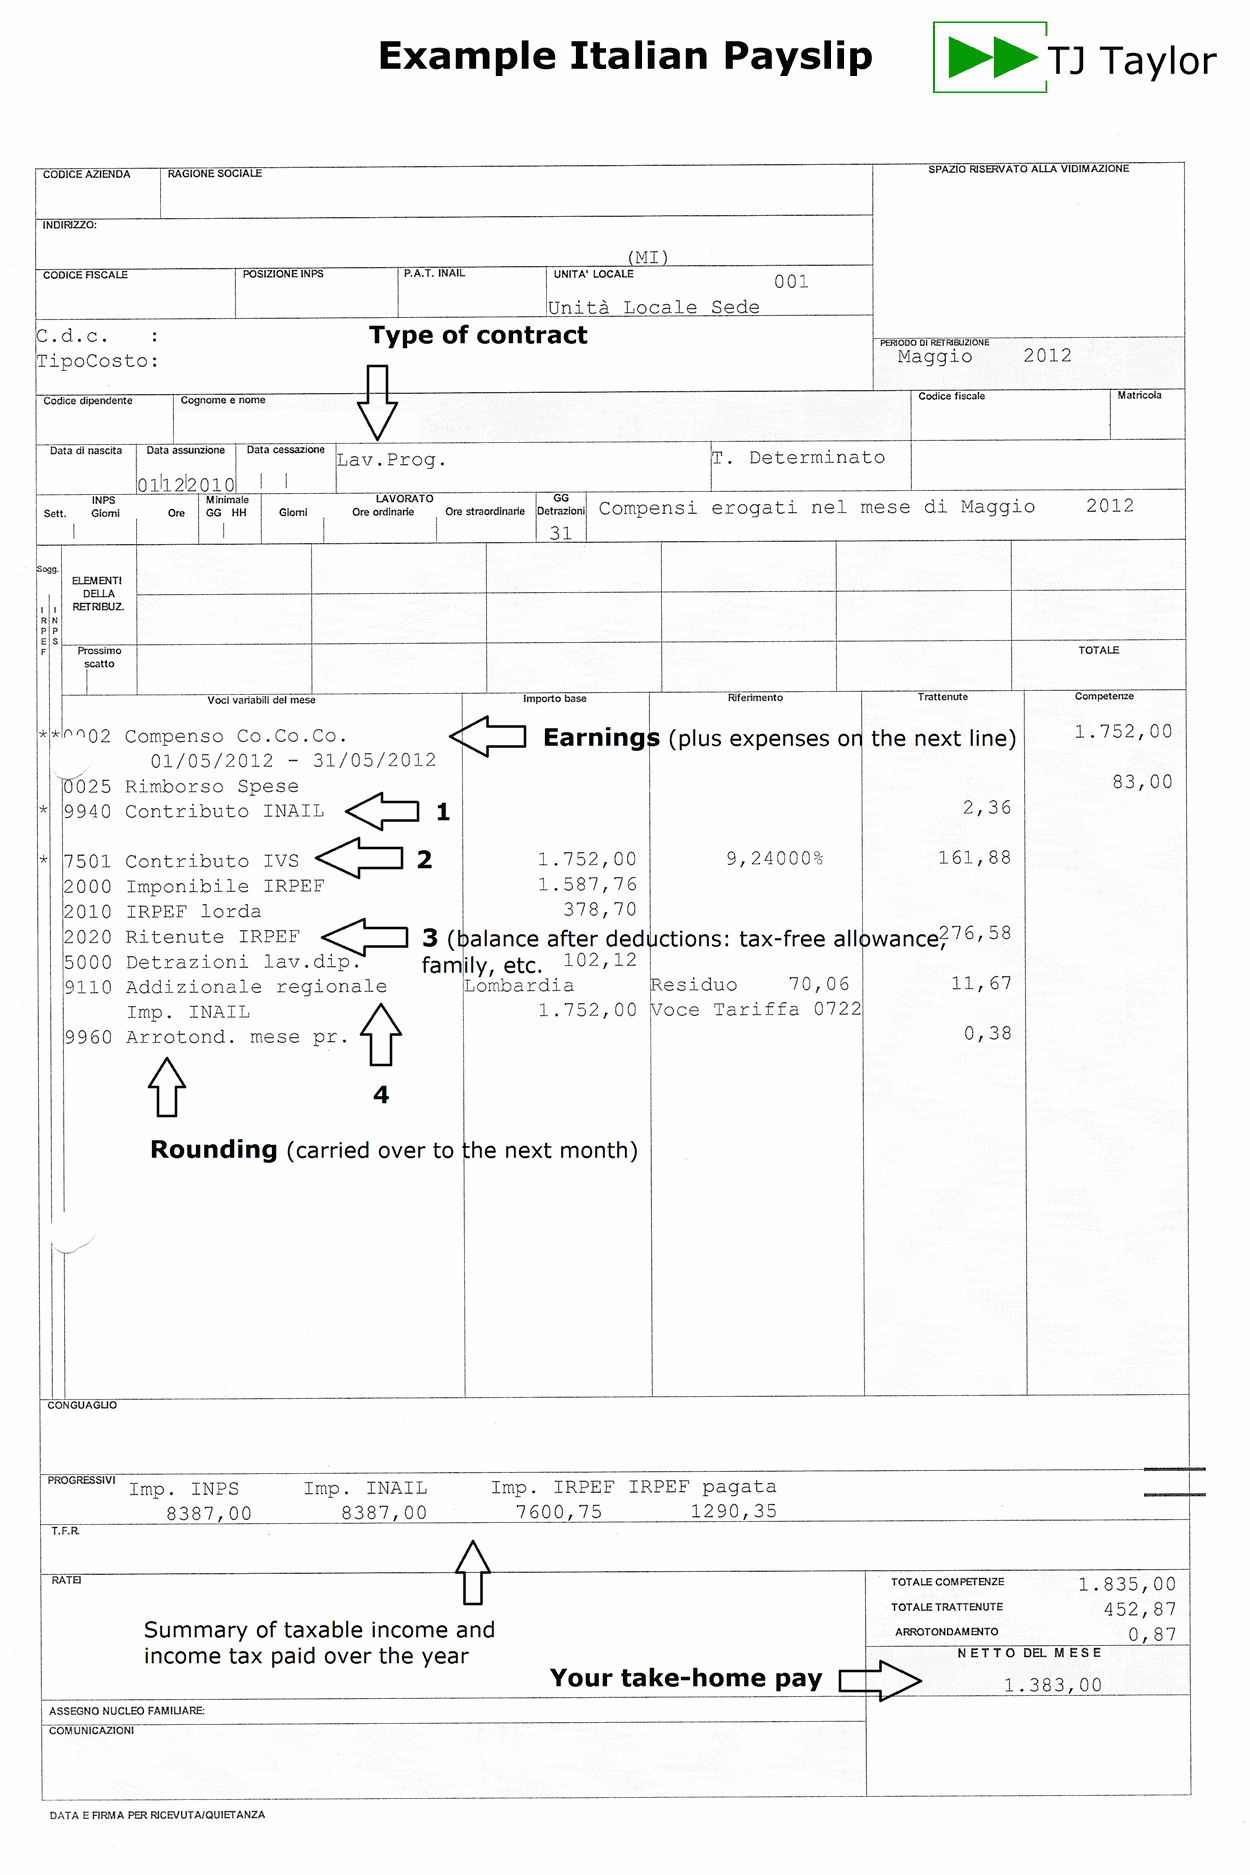 Payslips and Common Italian Terms – Example Payslip